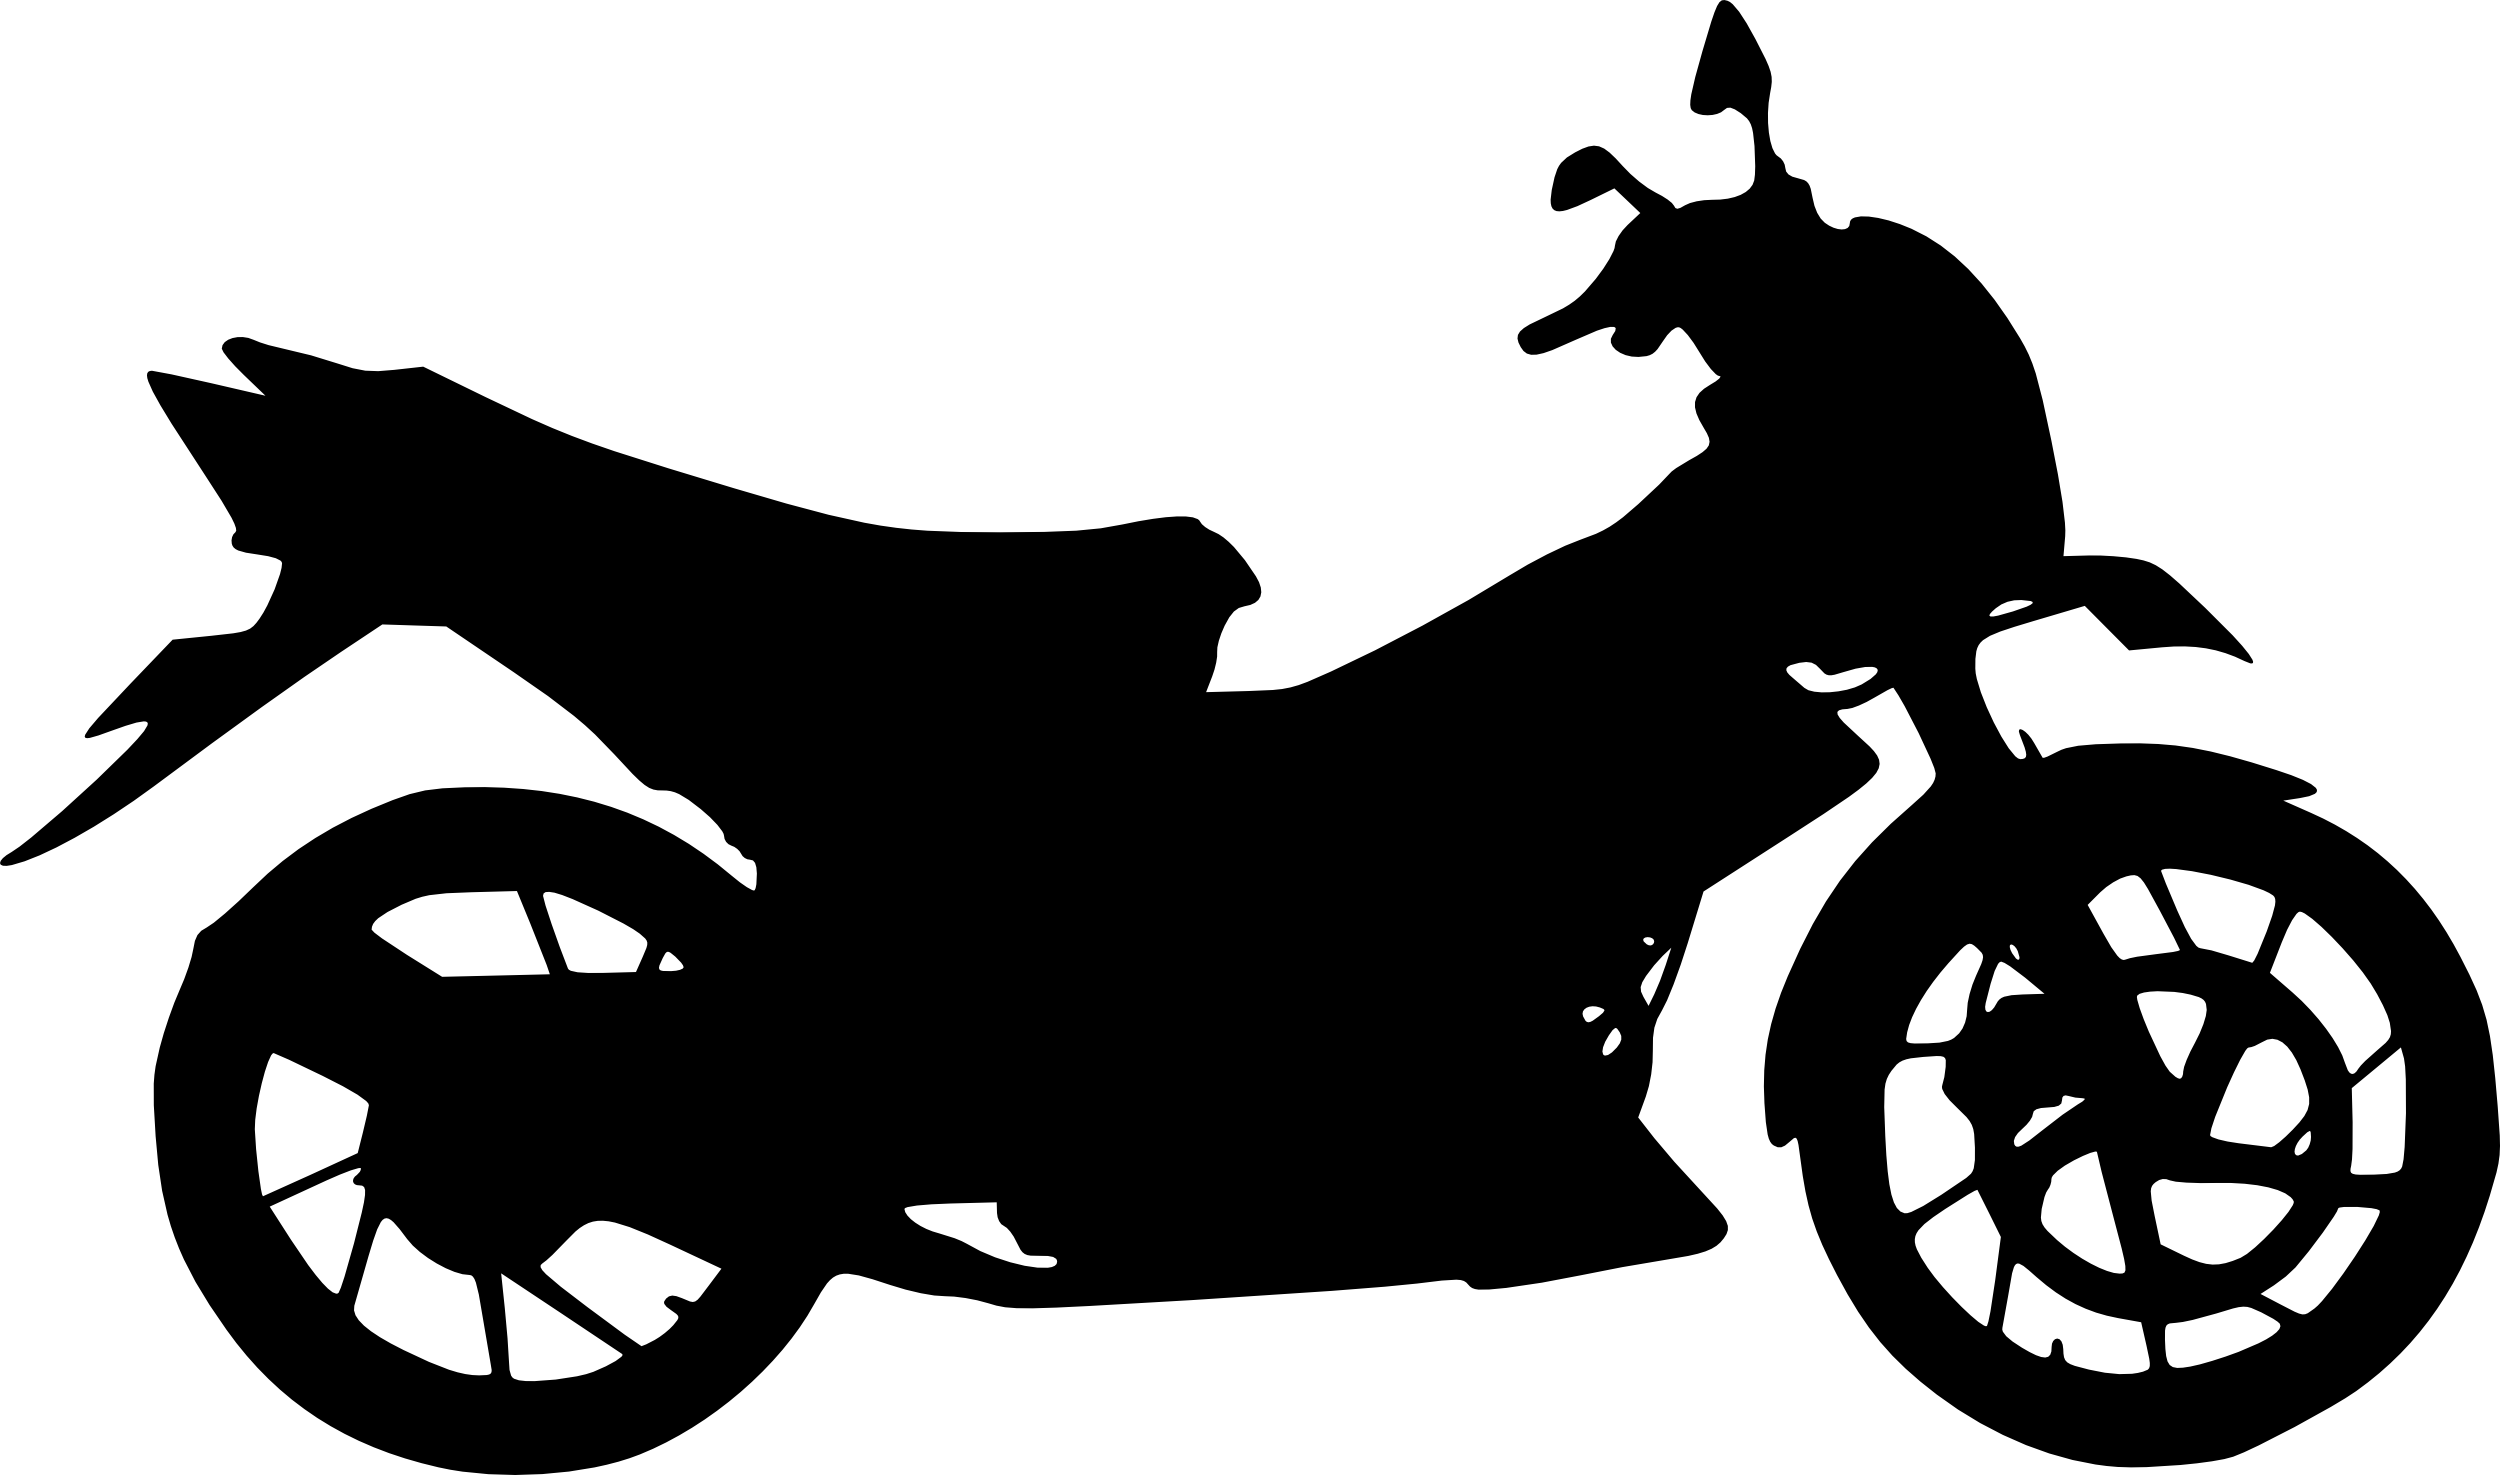 Scooter clipart silhouette. Motorcycle images at getdrawings